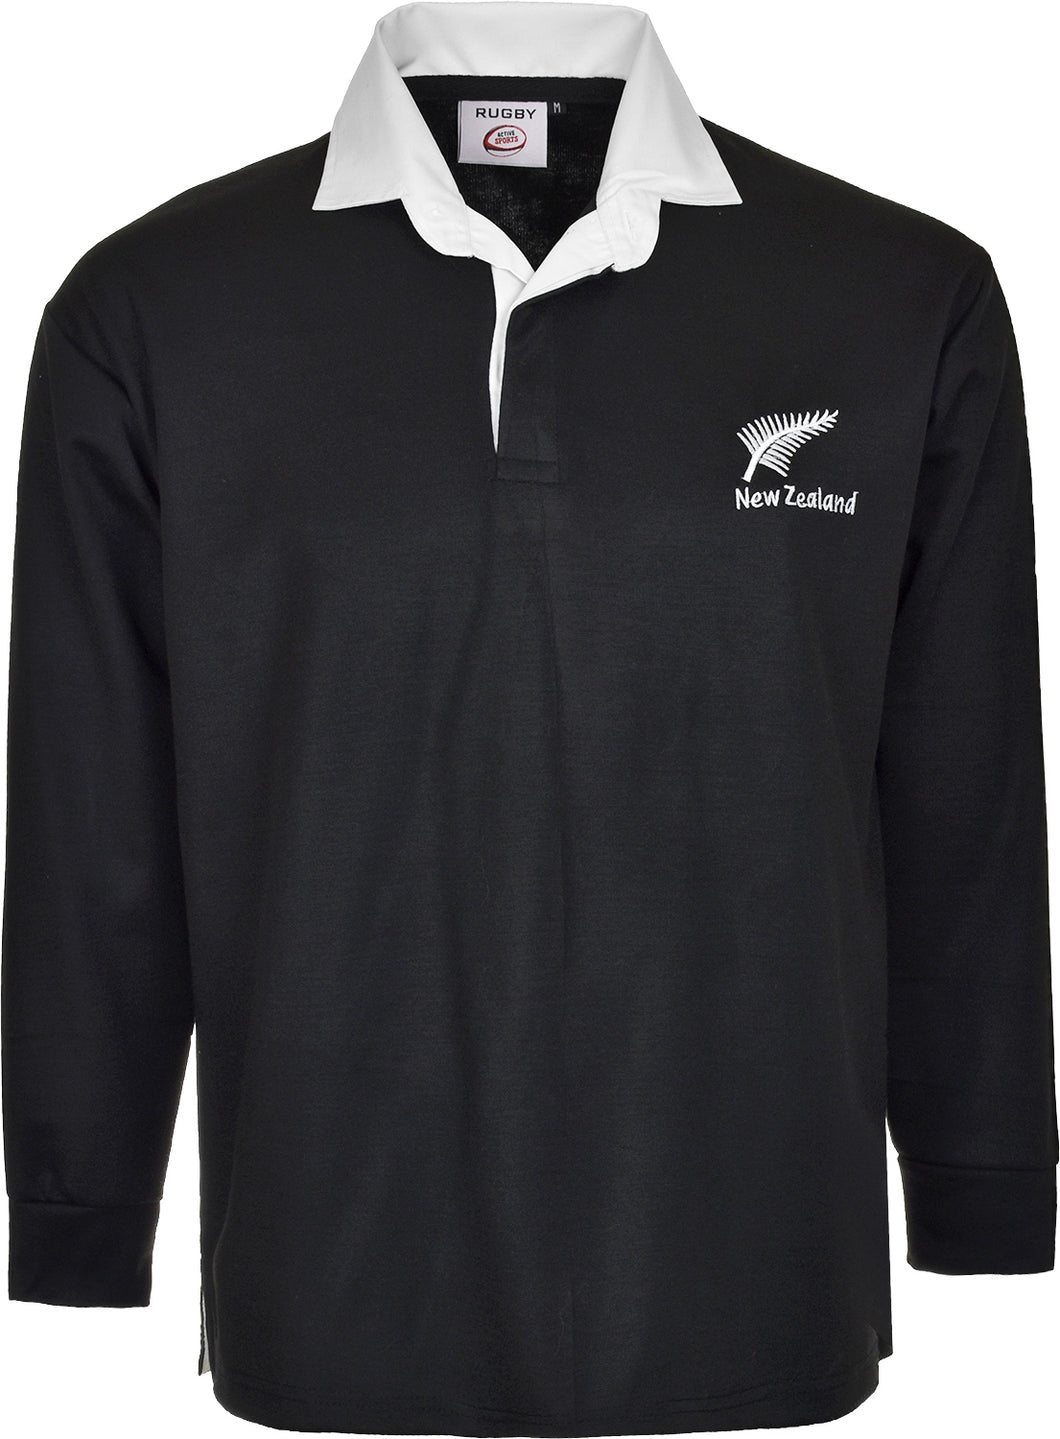 NEW ZEALAND RUGBY SHIRT LONG SLEEVE BLACK/WHITE